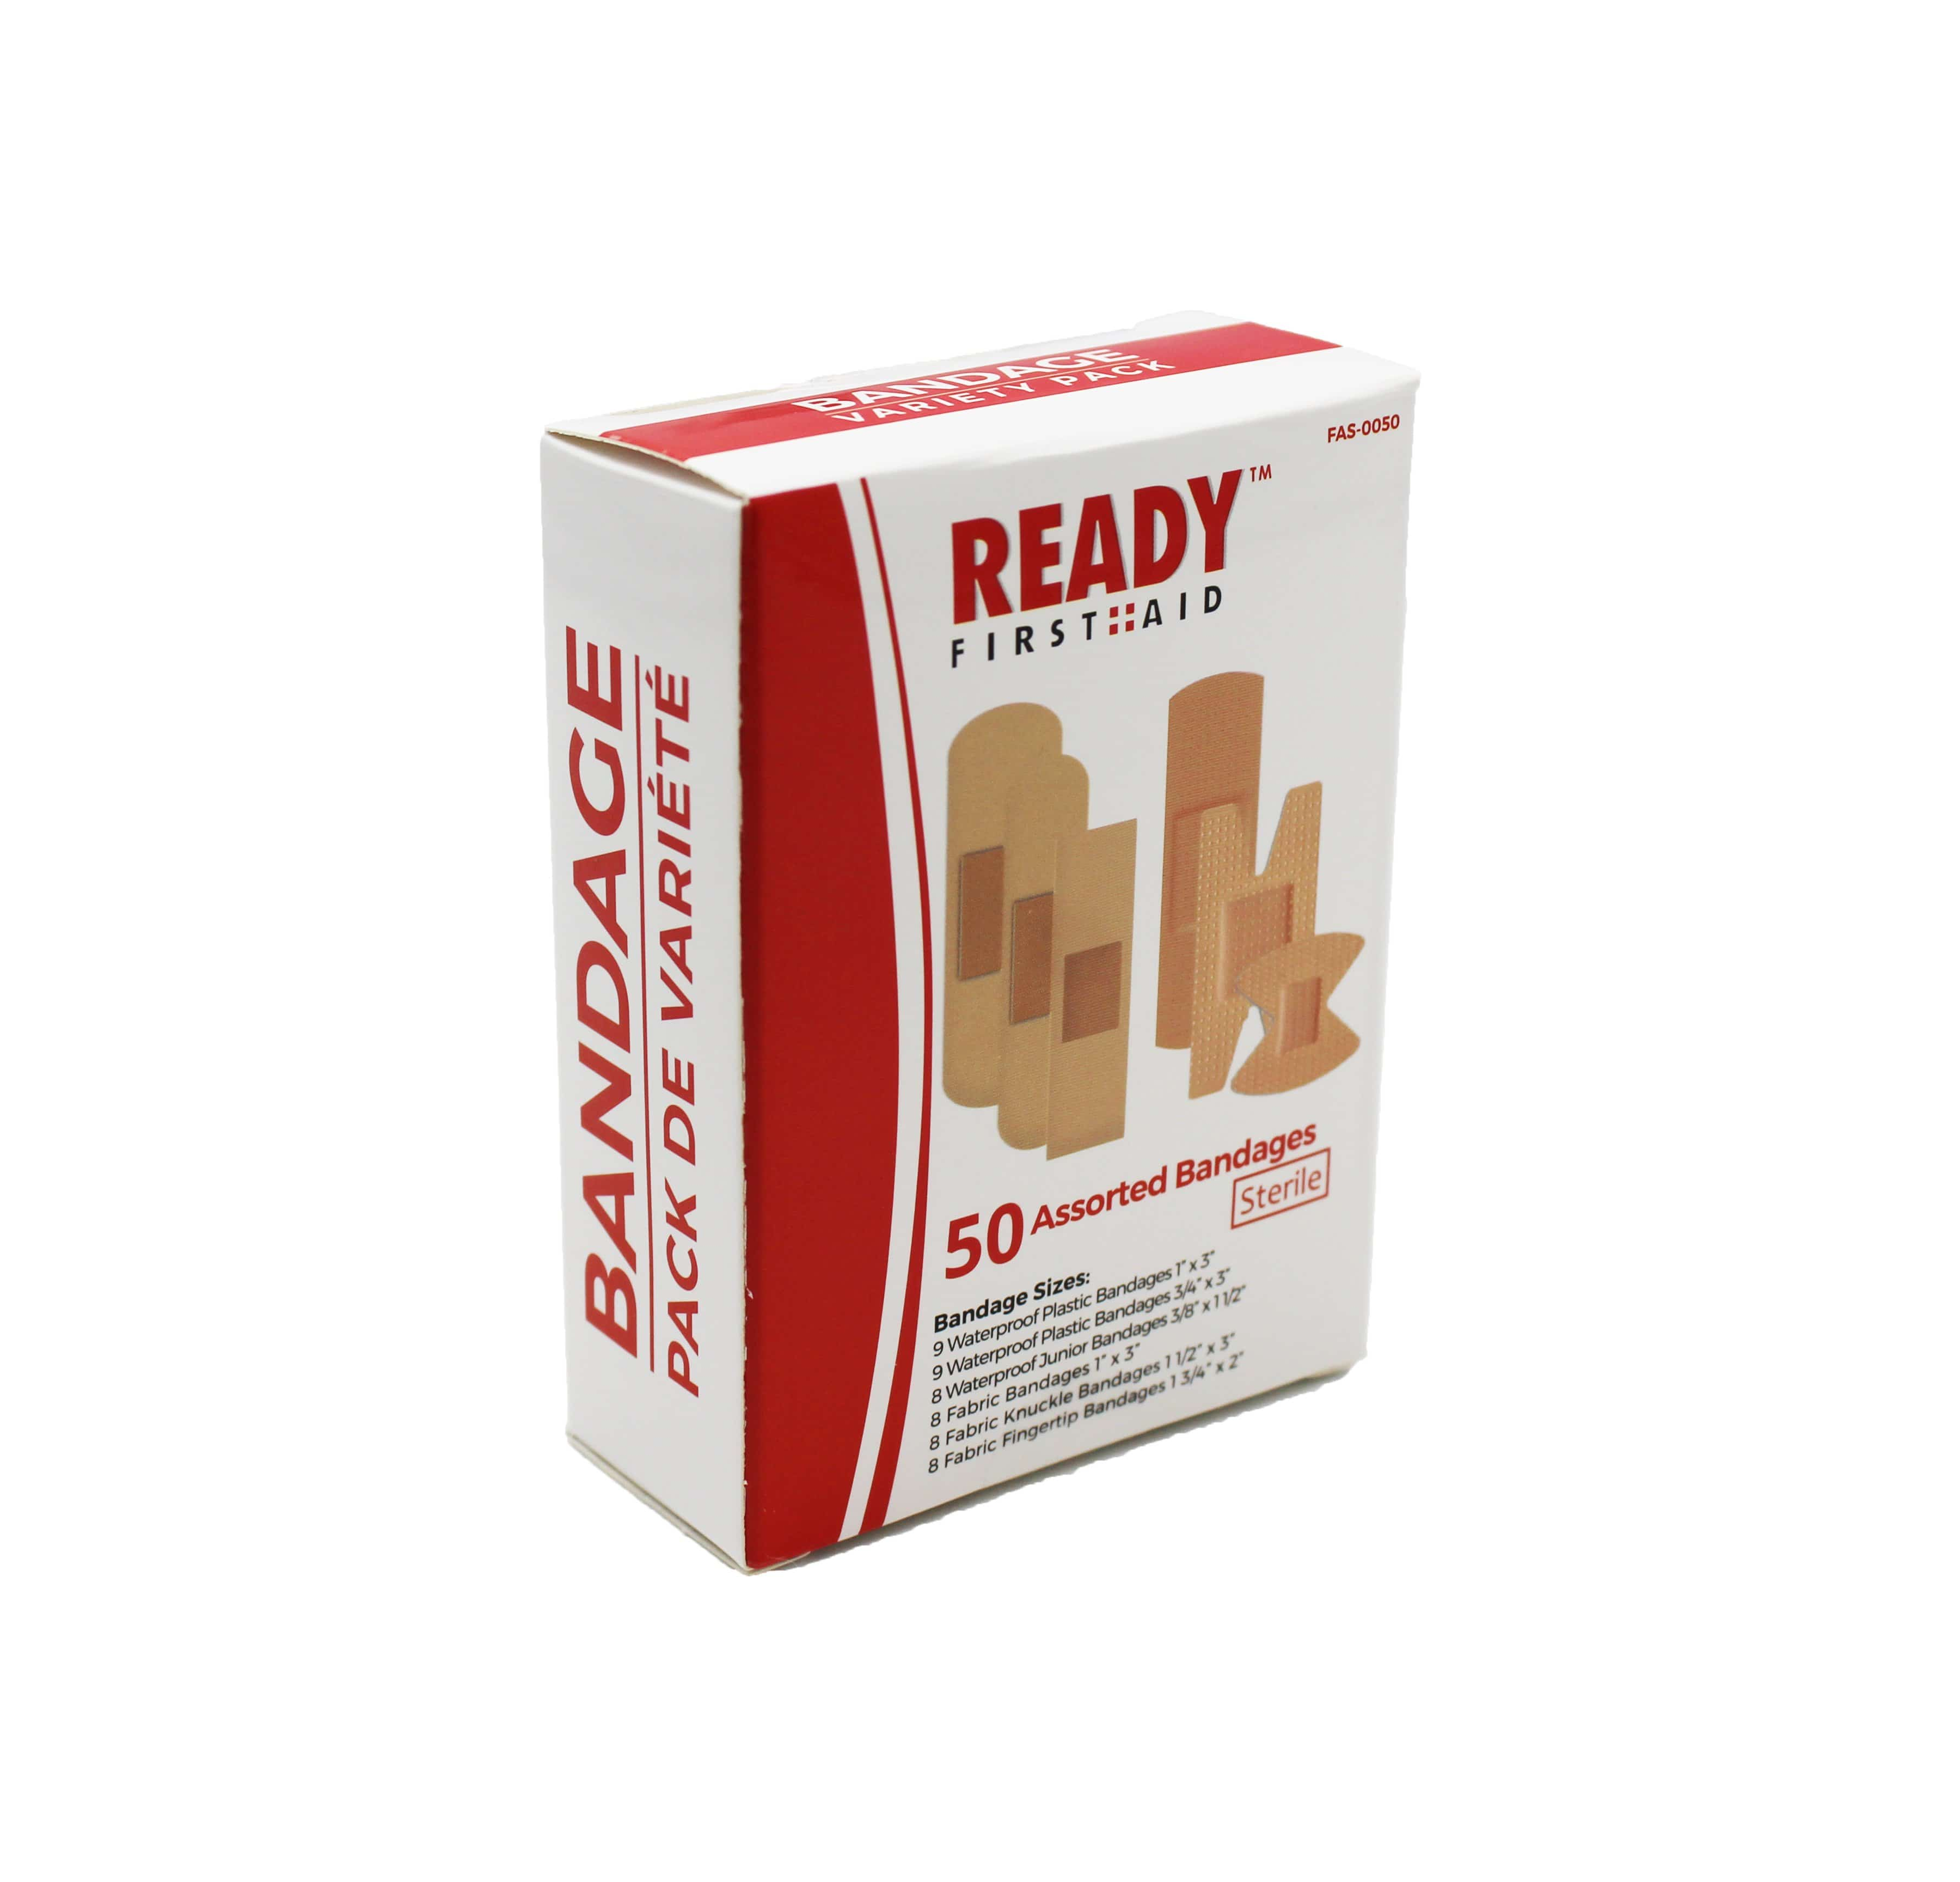 Ready First Aid 50 Assorted Adhesive Bandages 72hours Ca